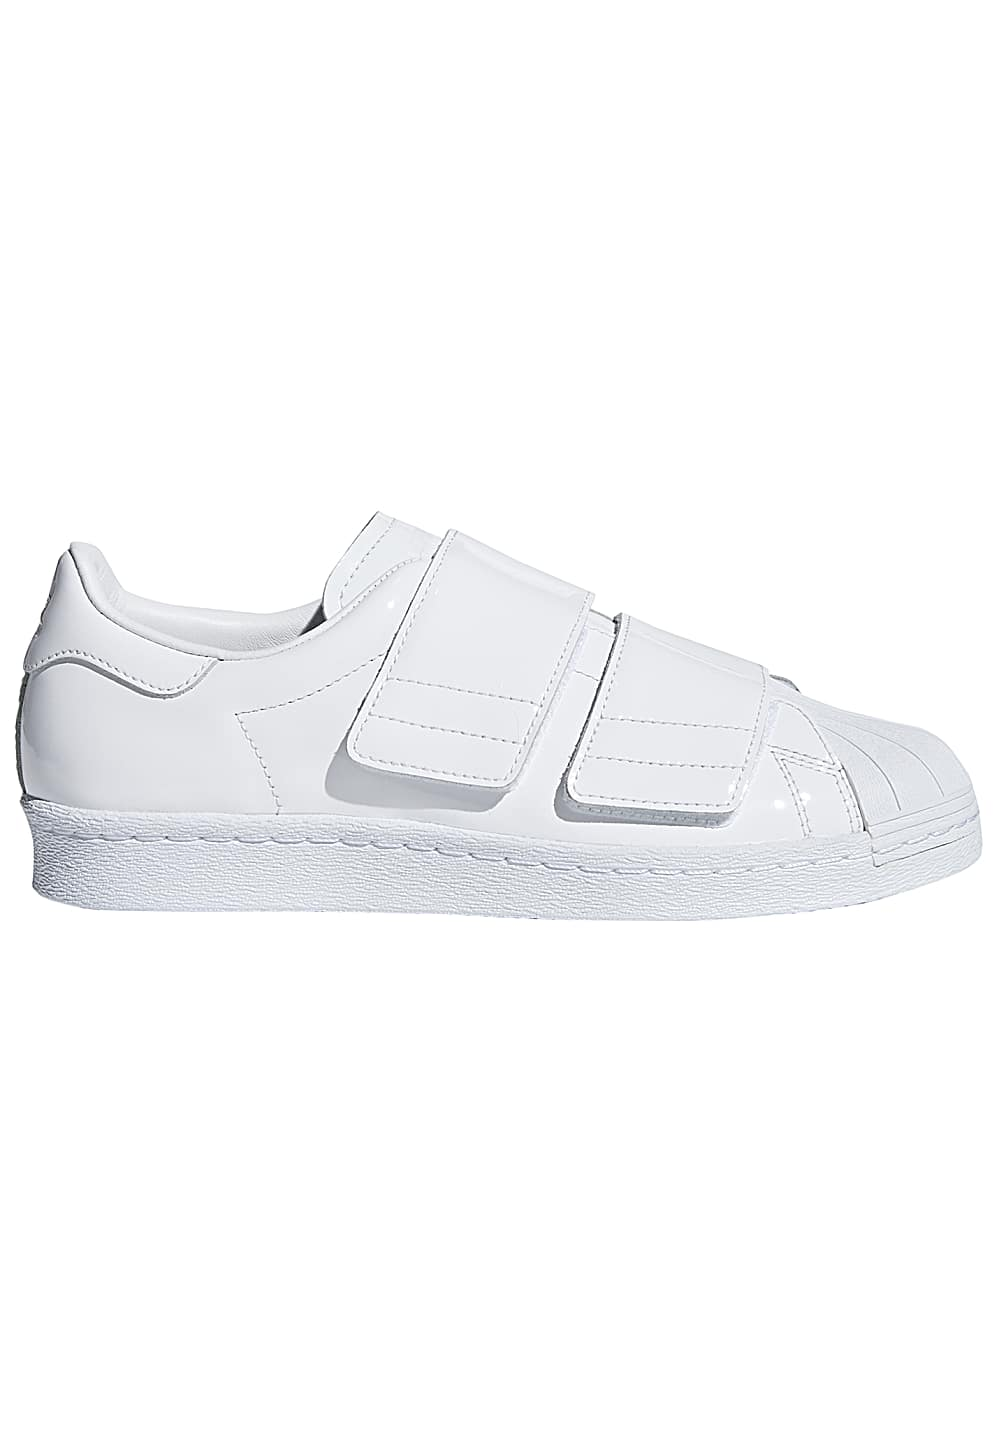 ADIDAS ORIGINALS Superstar 80s Cf Sneakers for Women White